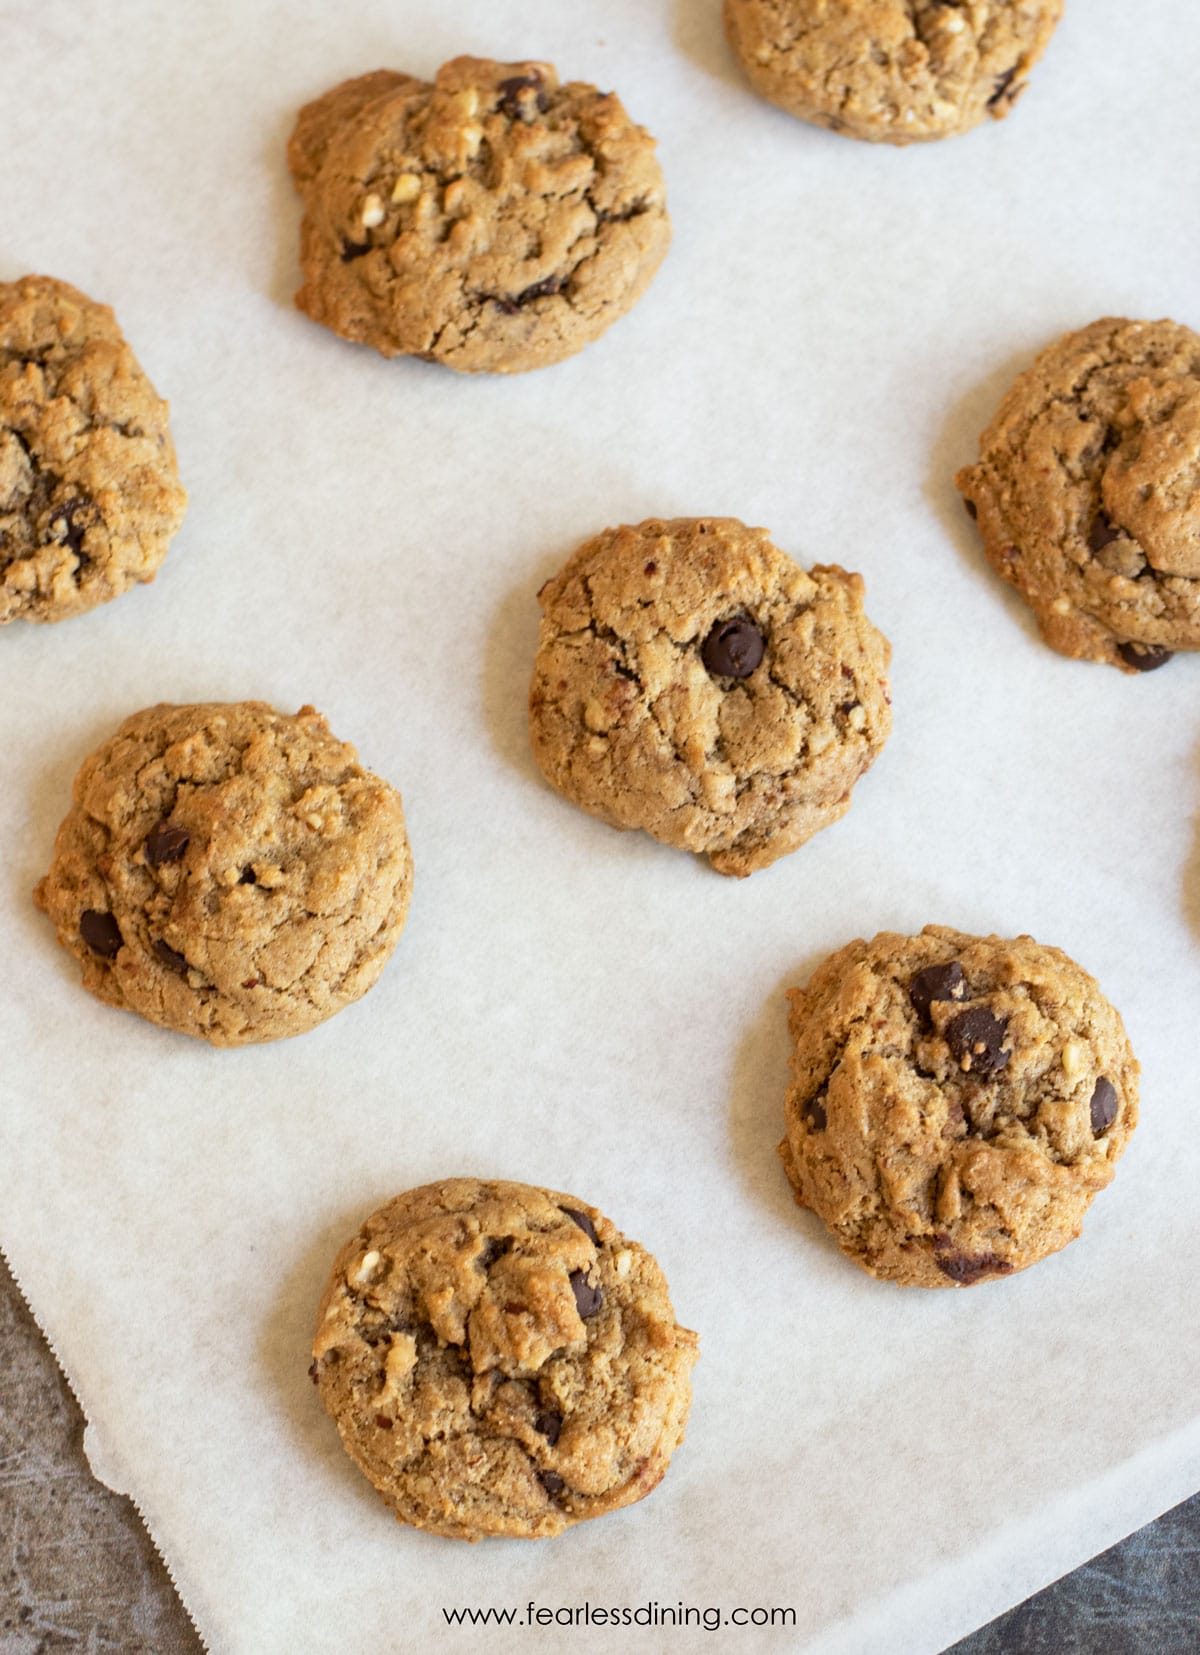 baked cookies on the baking sheet